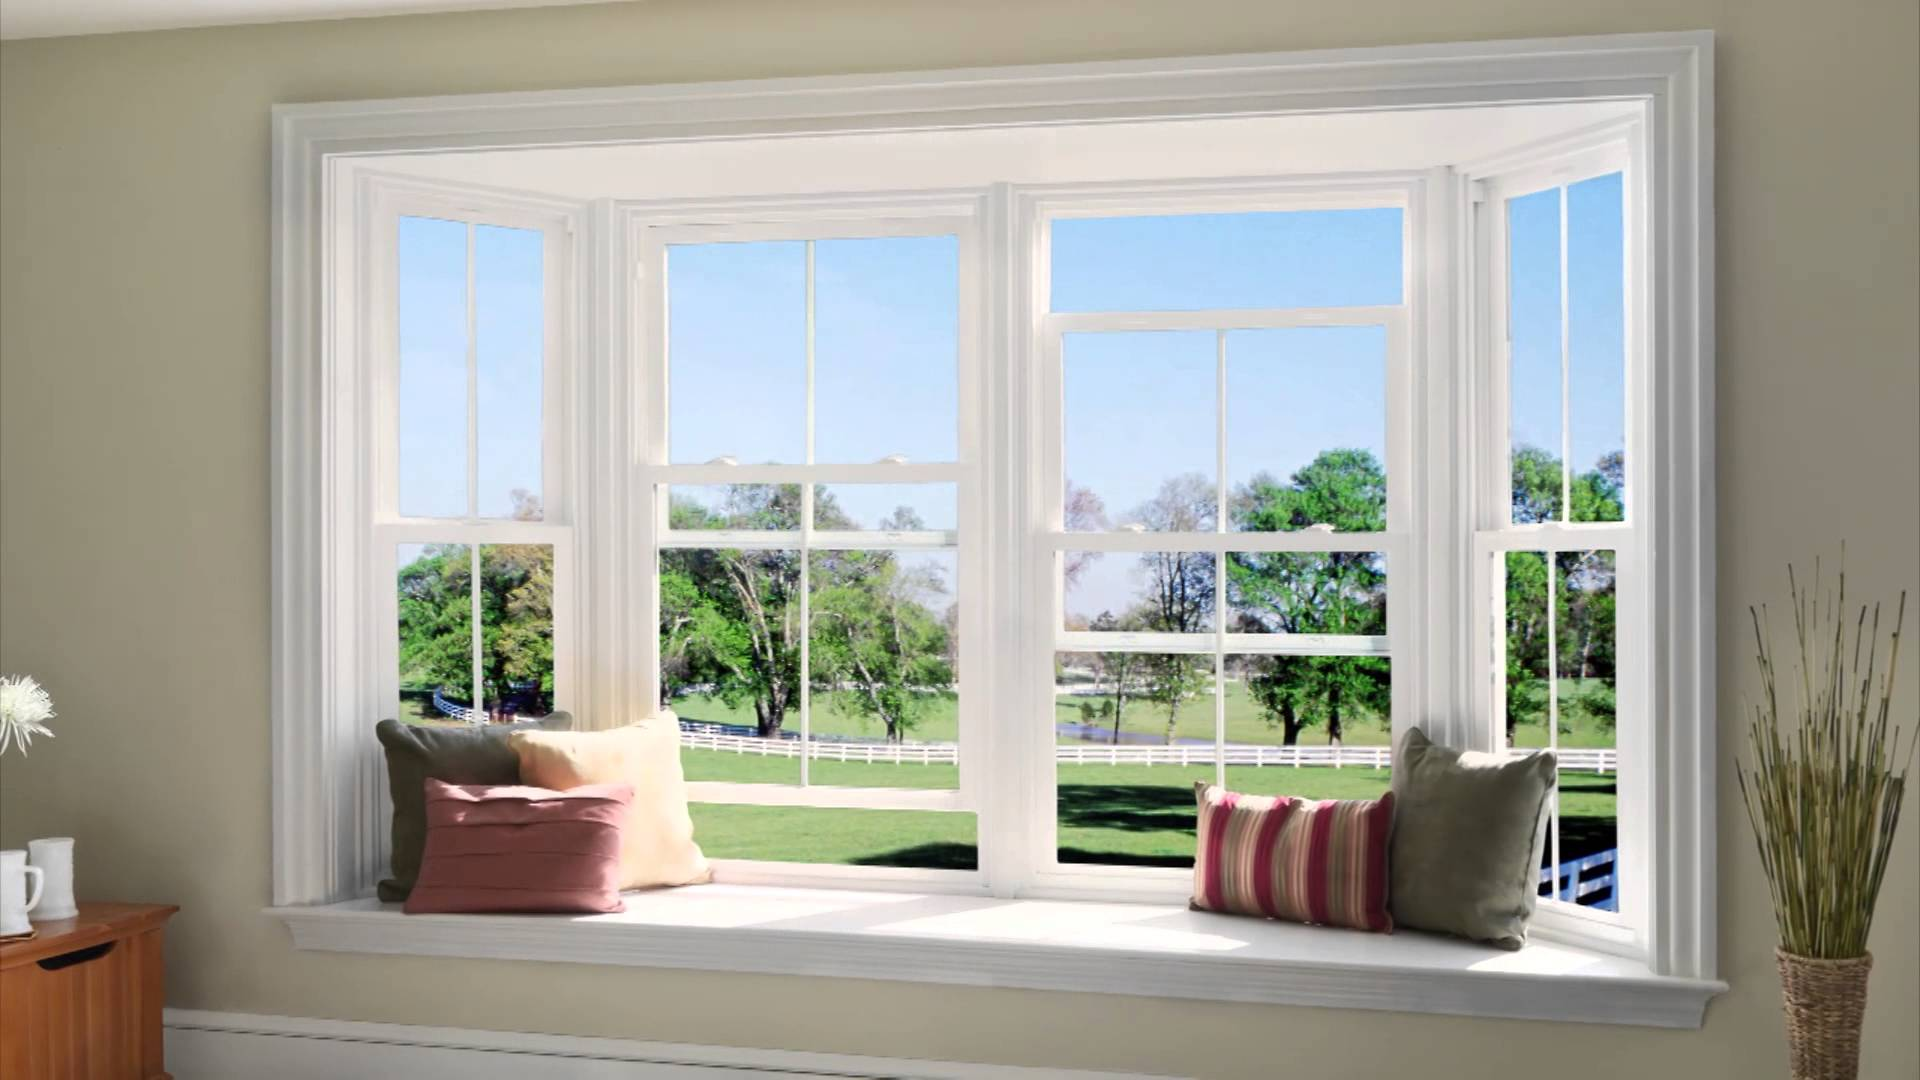 Windows elite vinyl windows inc for Vinyl windows denver